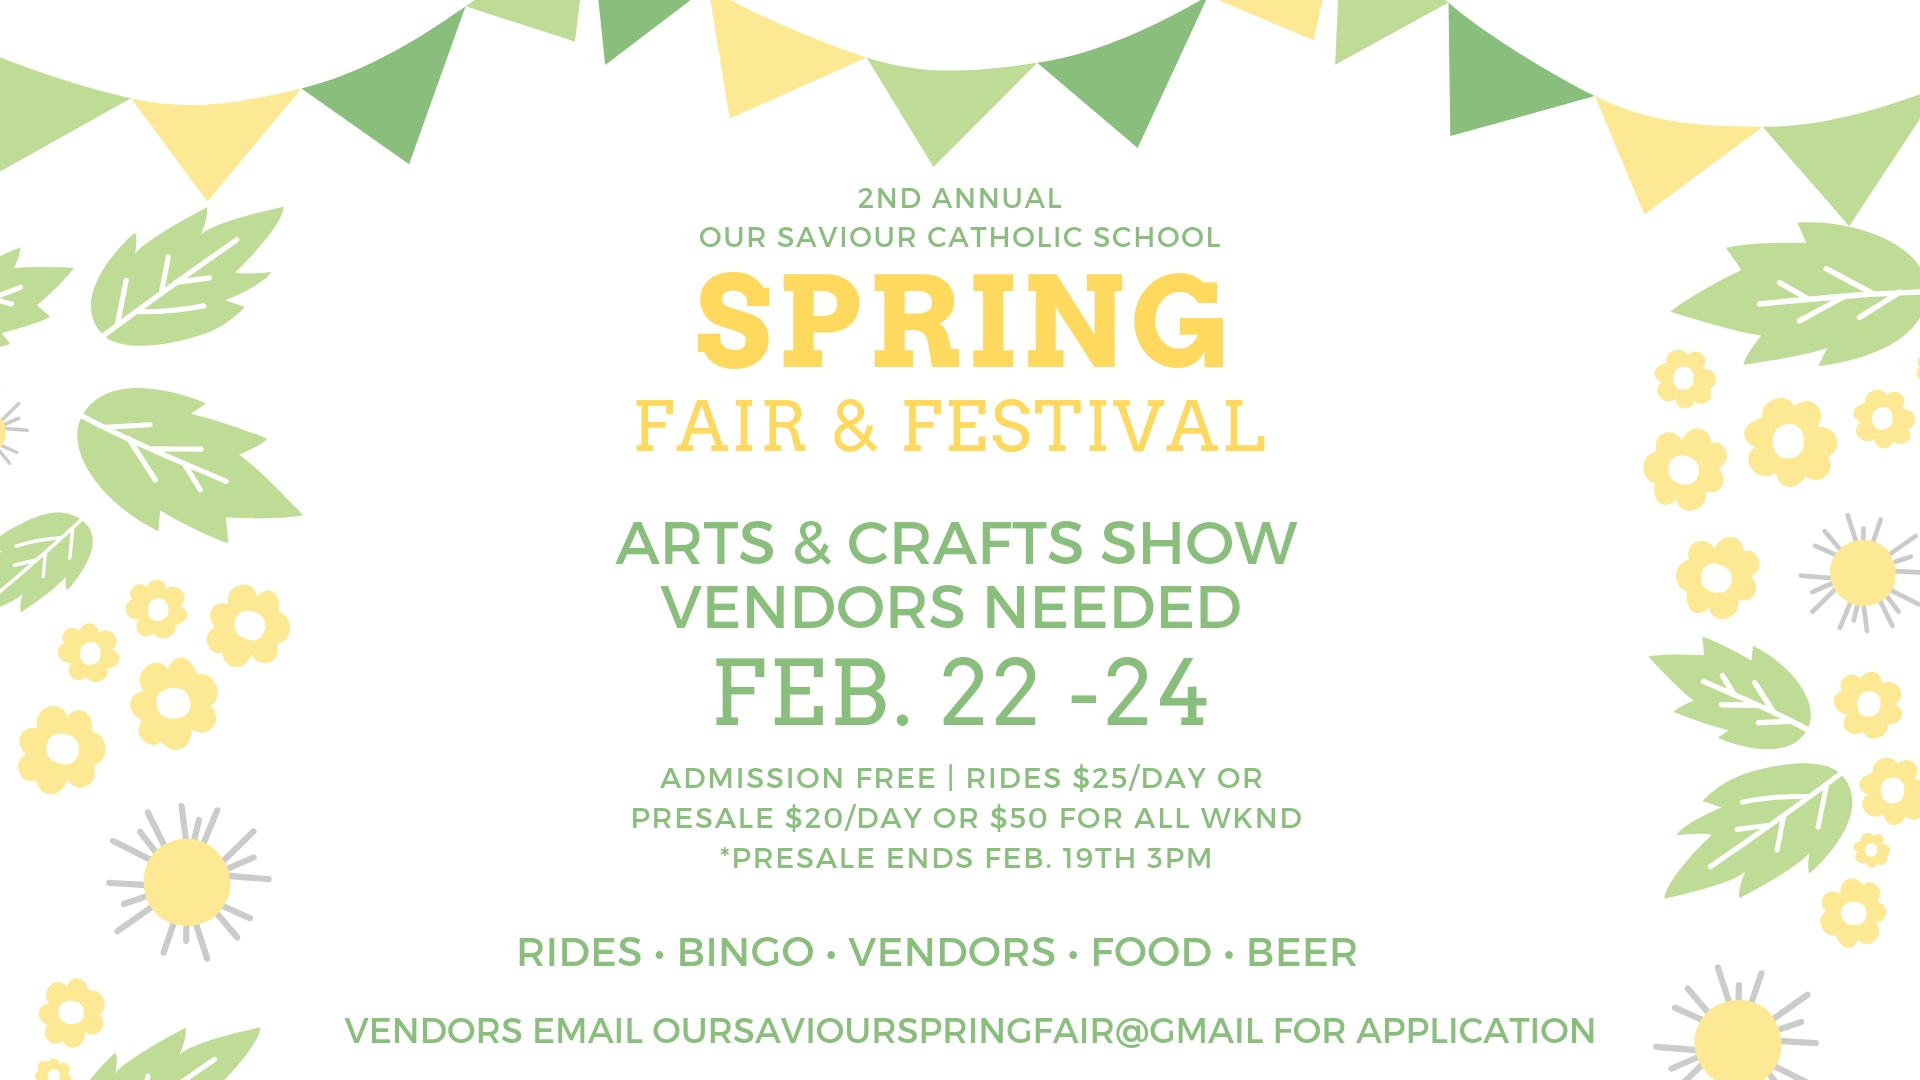 2019 spring fair FB EVENT - VENDORS NEEDED.jpg